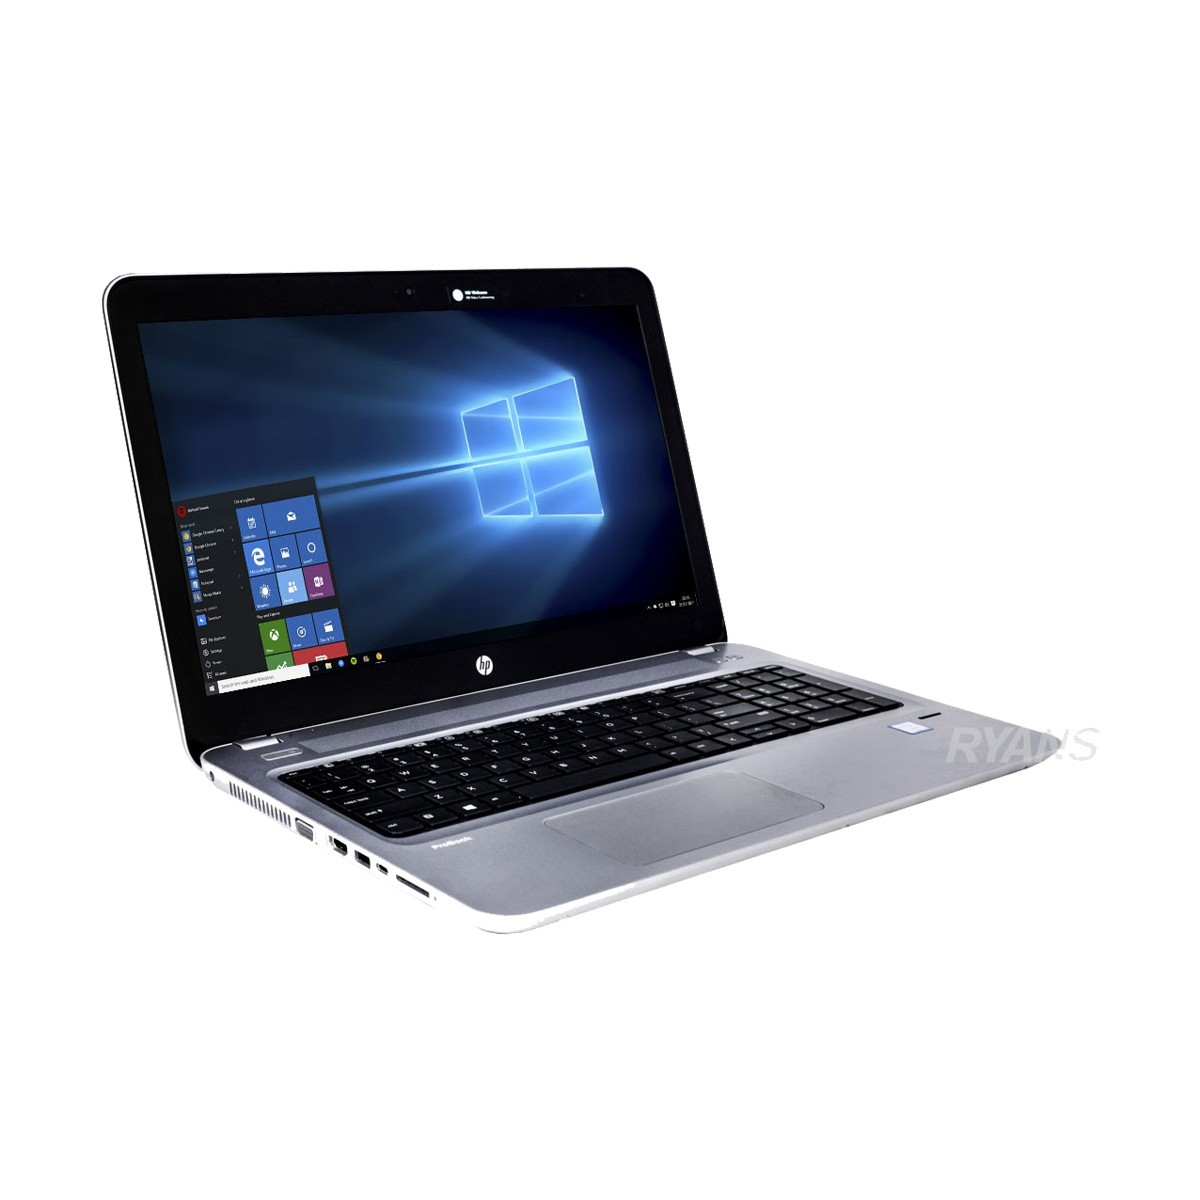 Hp Probook 450 G4 Dove Computers 0726 032 320 Hp Probook 450 G4 Core I5